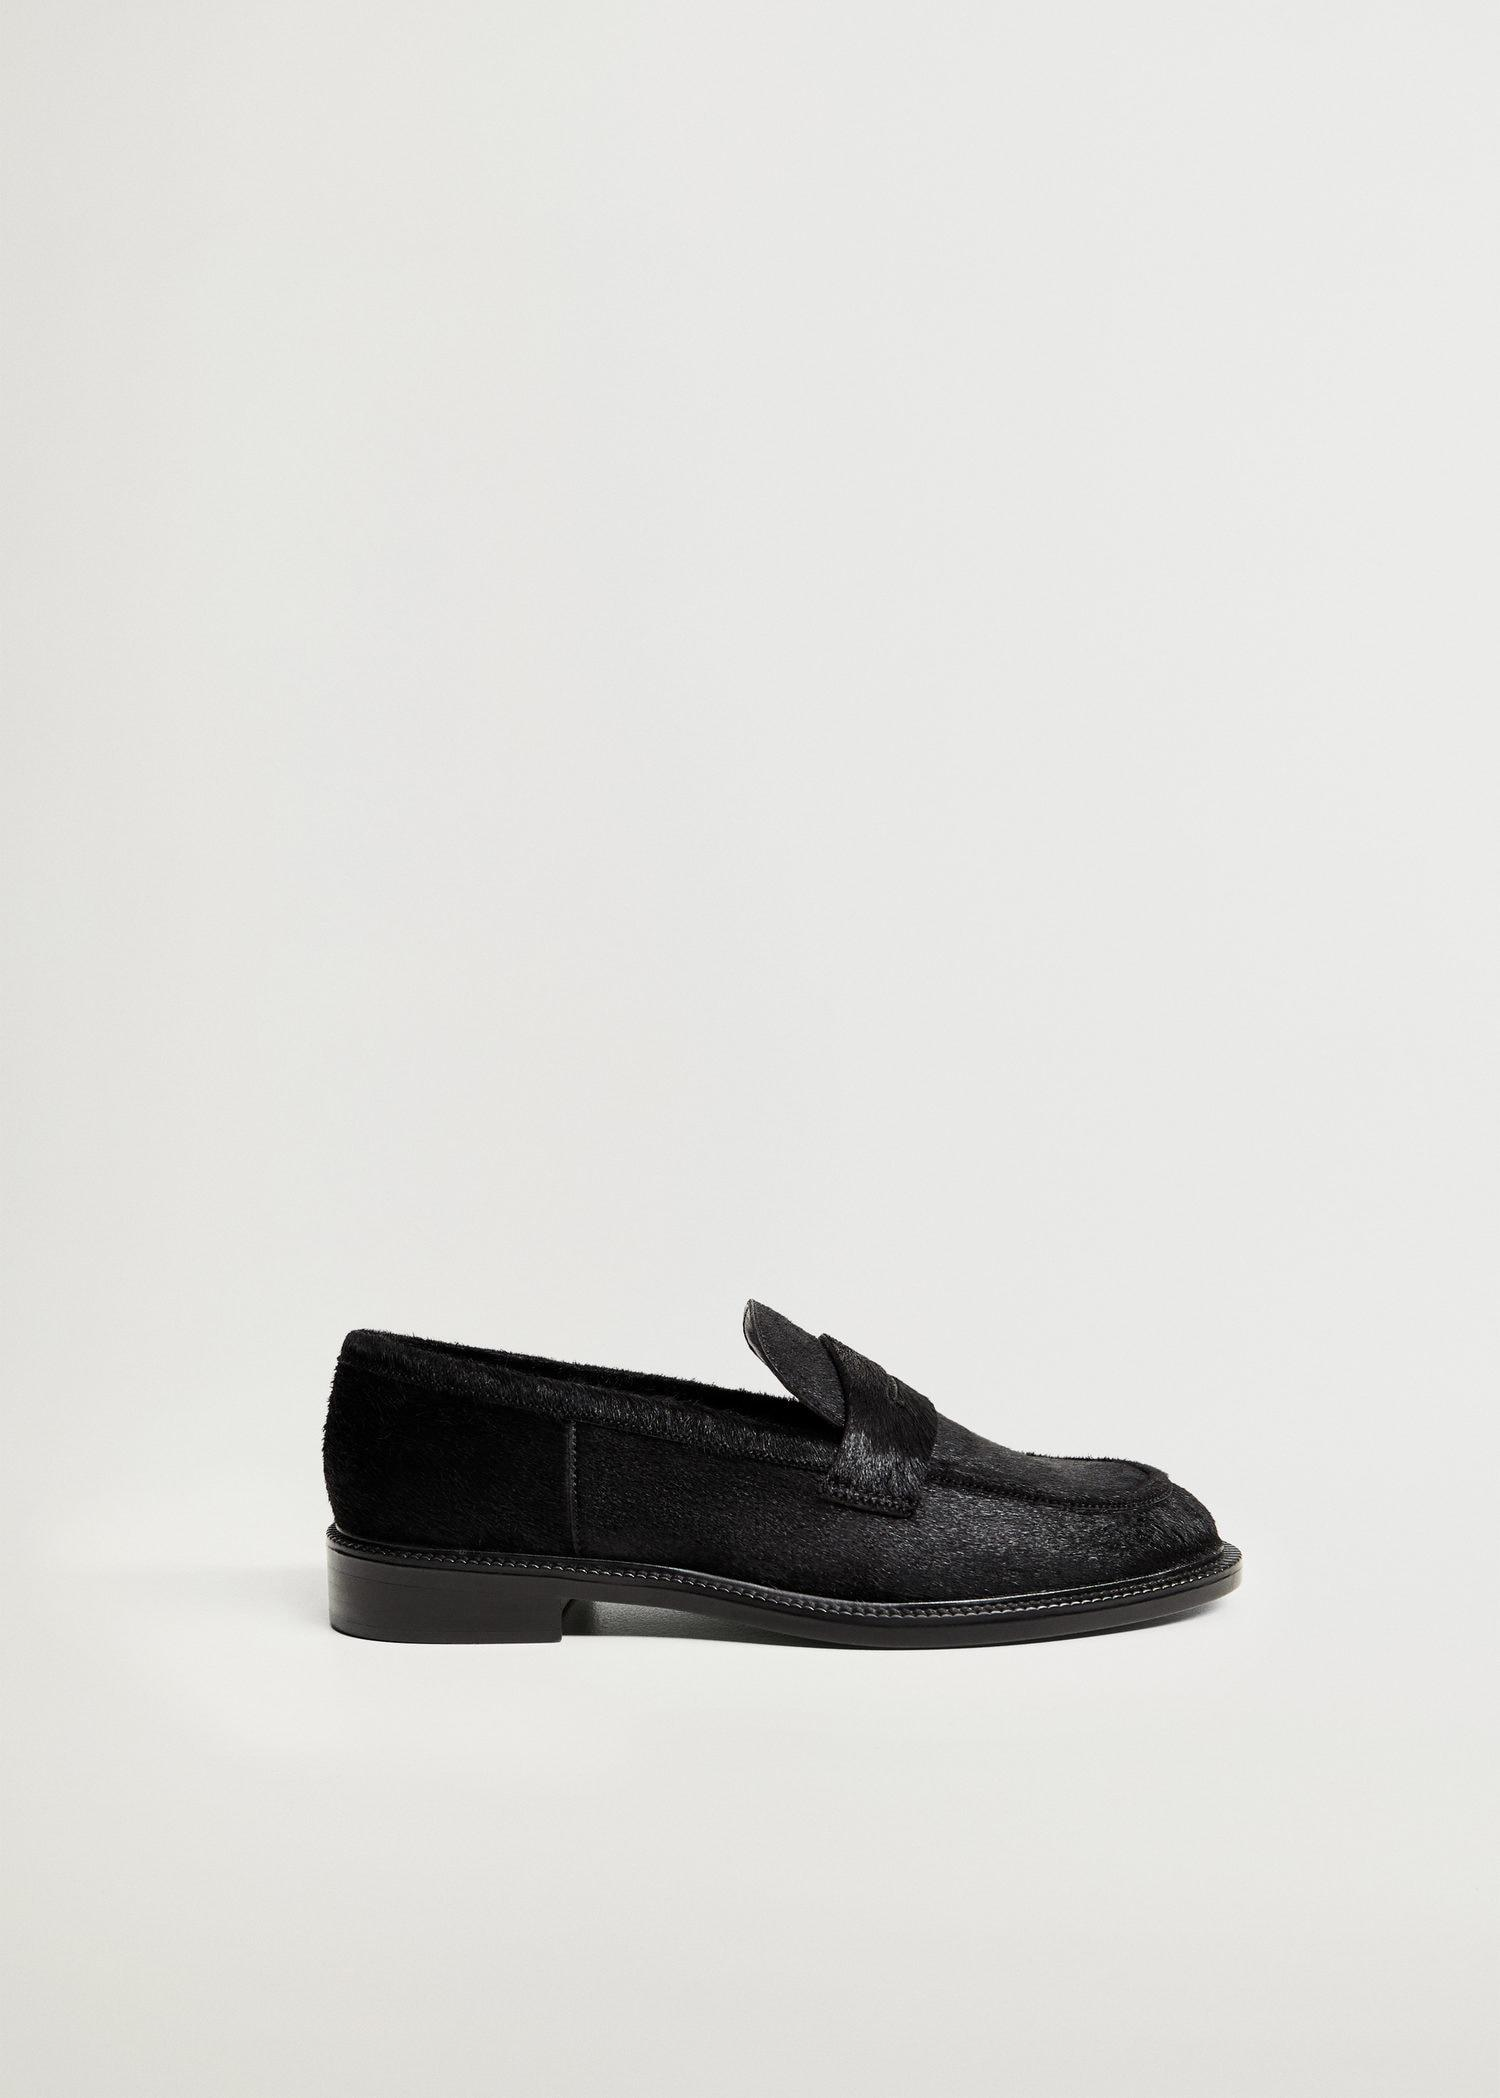 Fur leather loafers